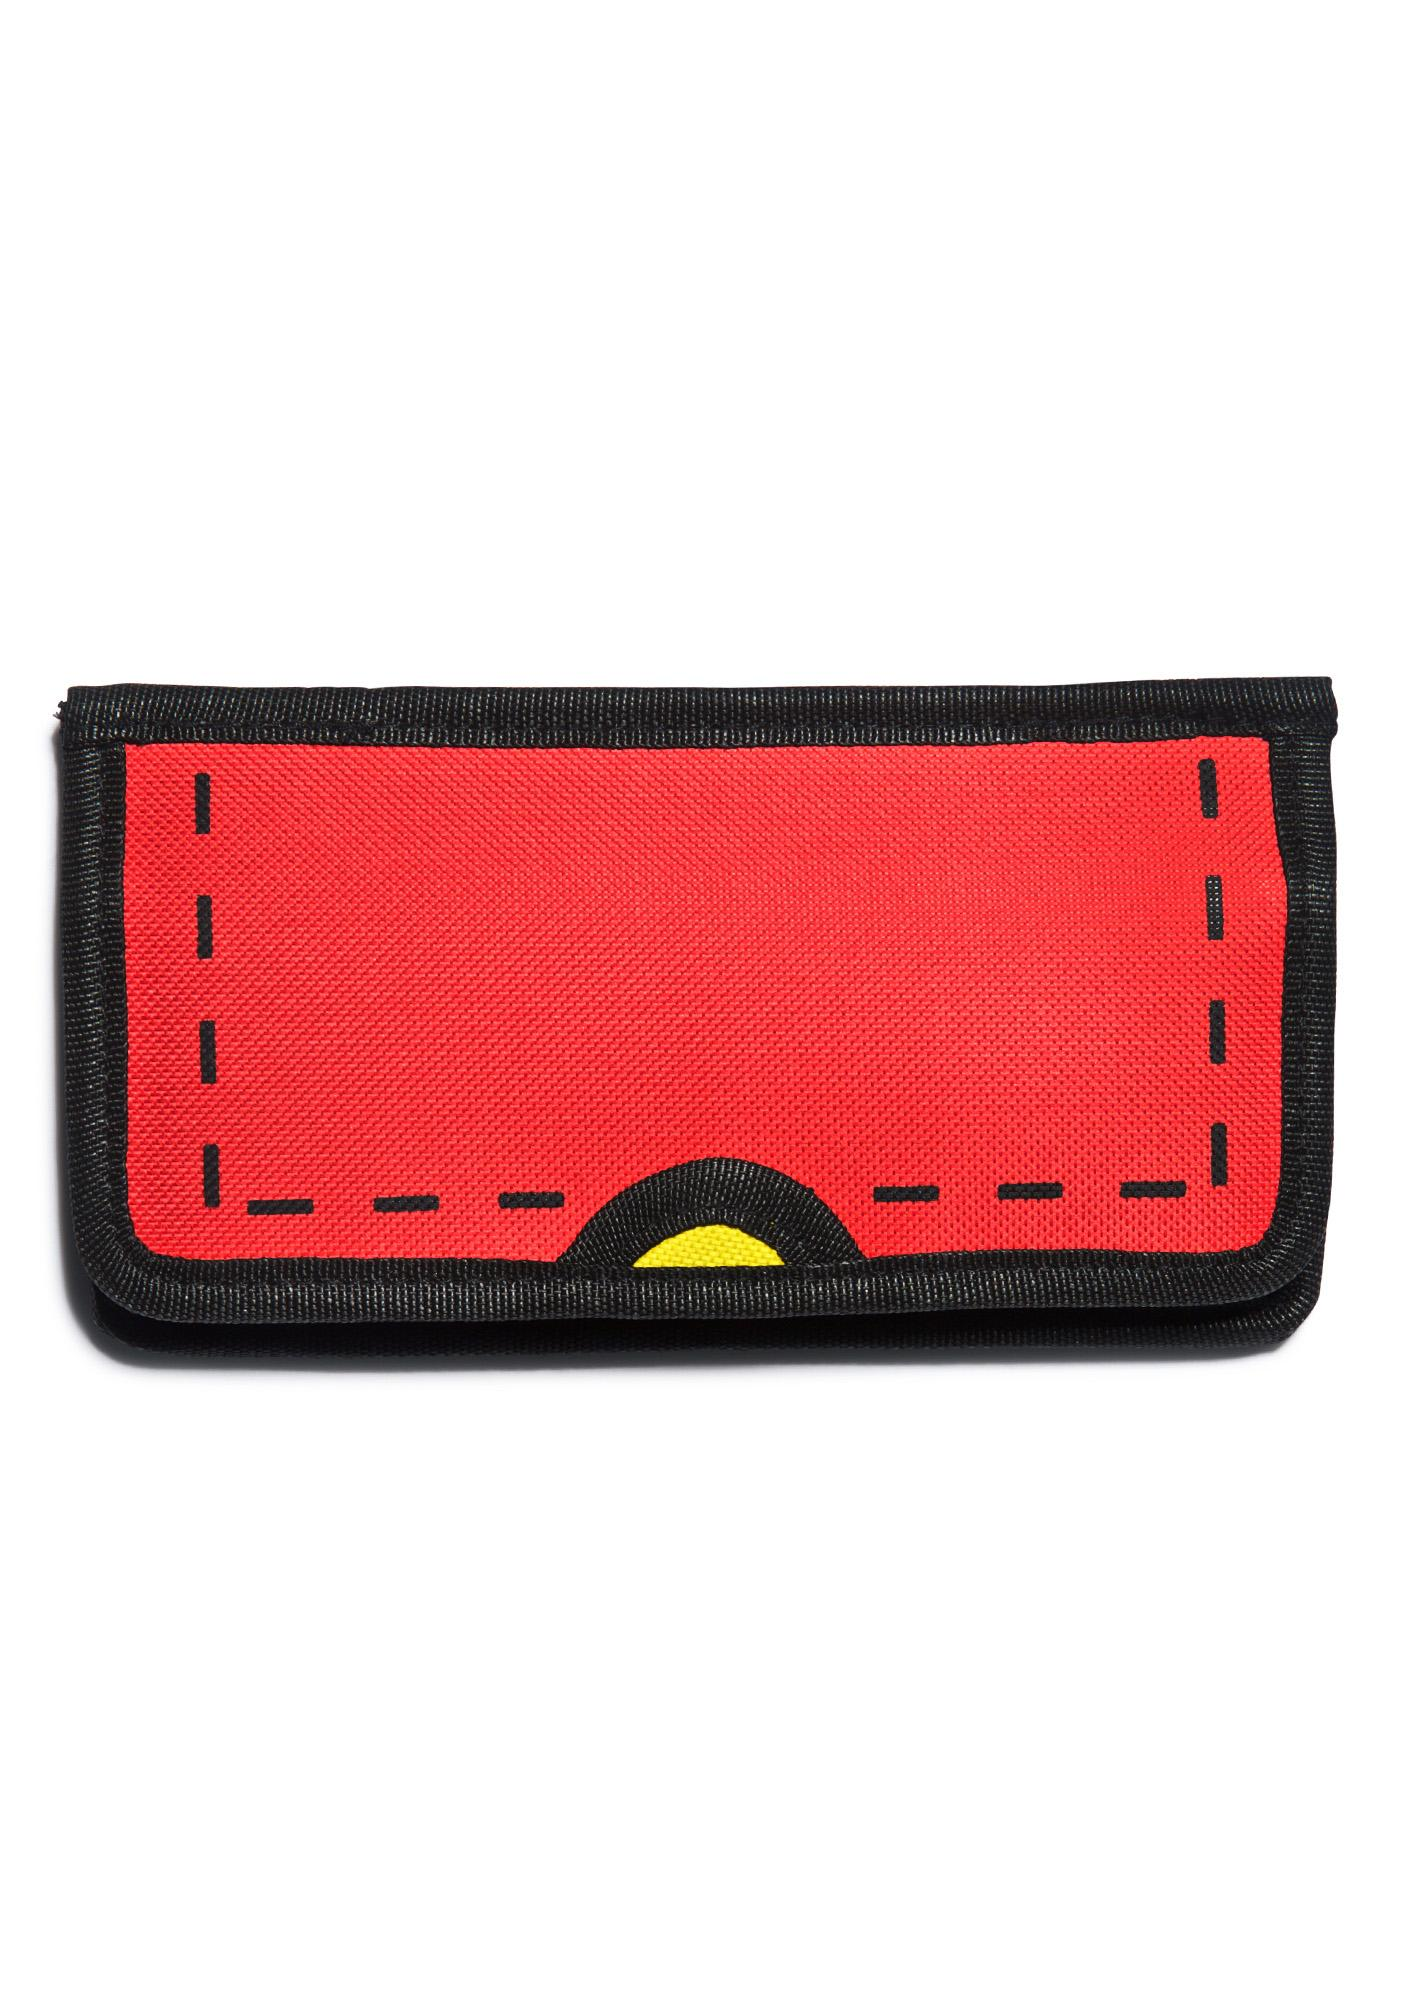 Gimme Ur Lunch Money Cartoon Wallet